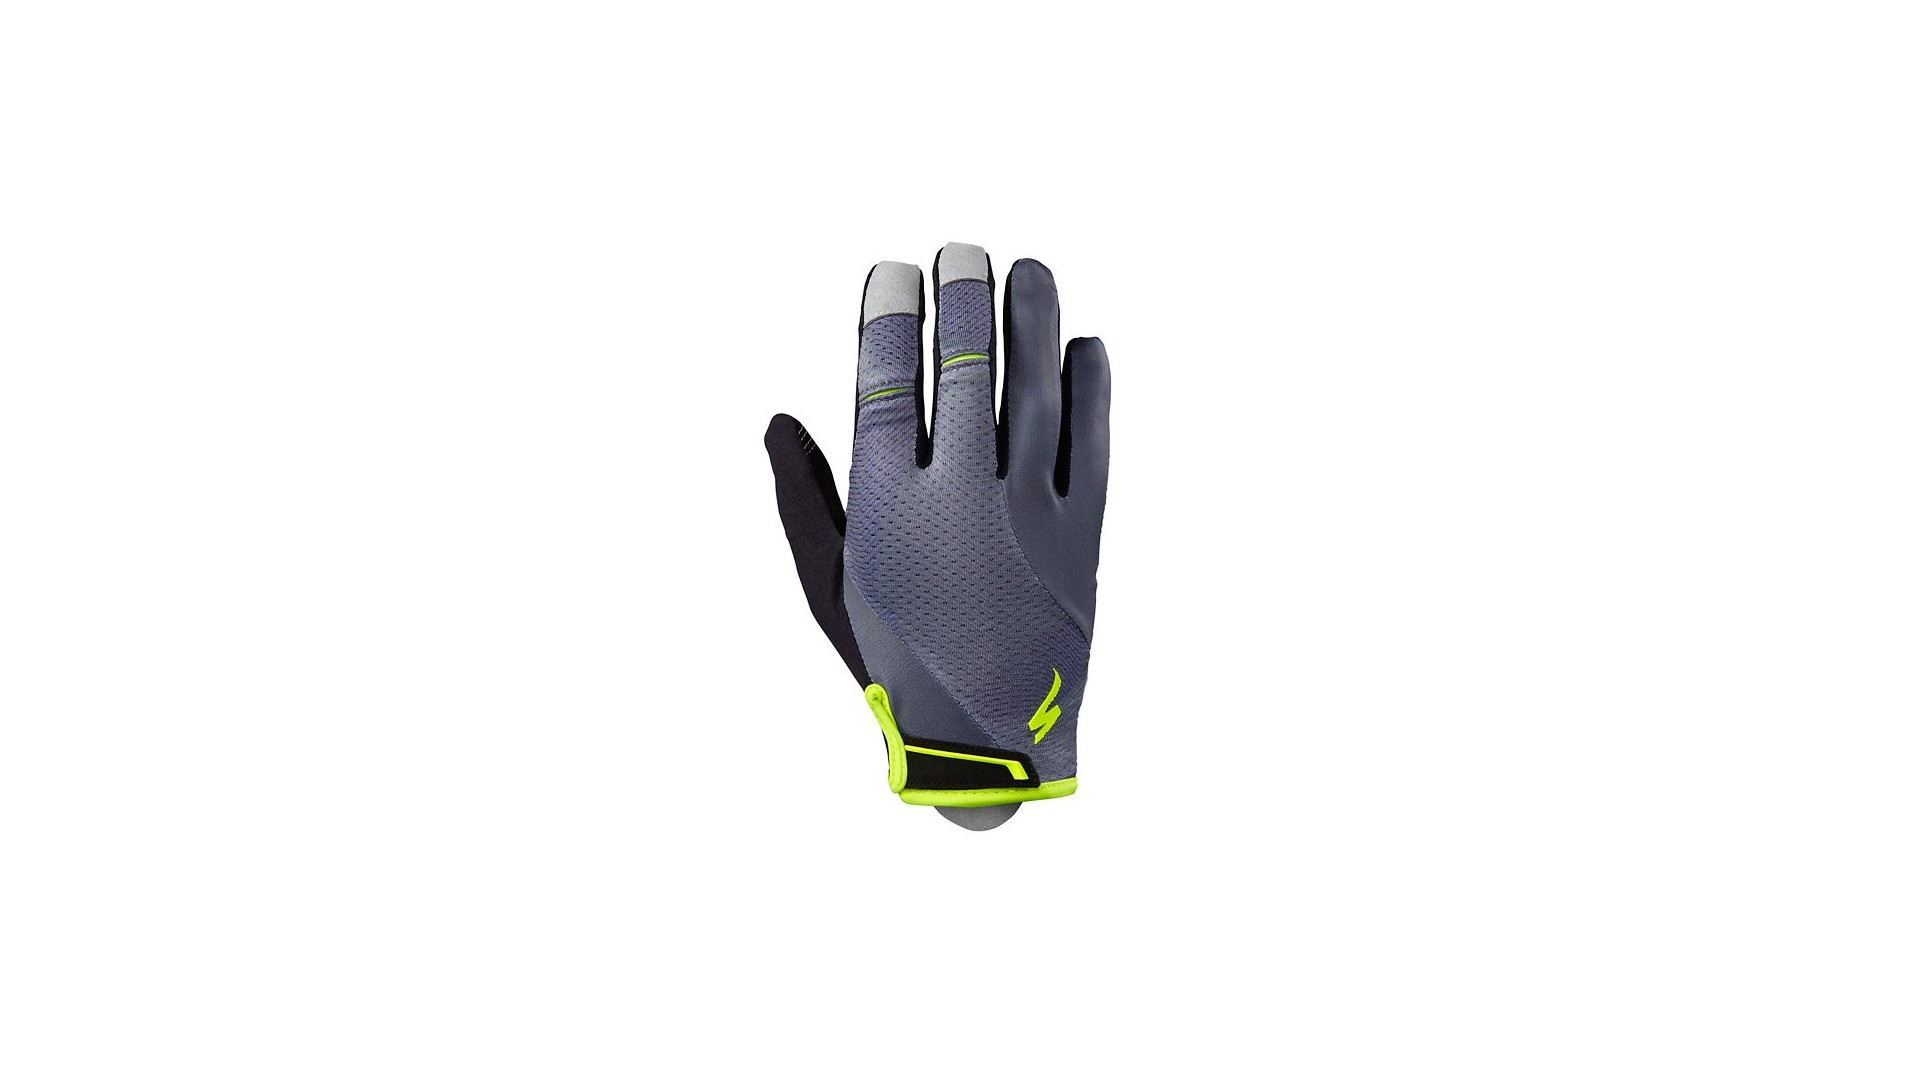 Gel Guantes LF Specialized Mujer Body Geometry Gris Carbon/Neon 1 IBKBike.es